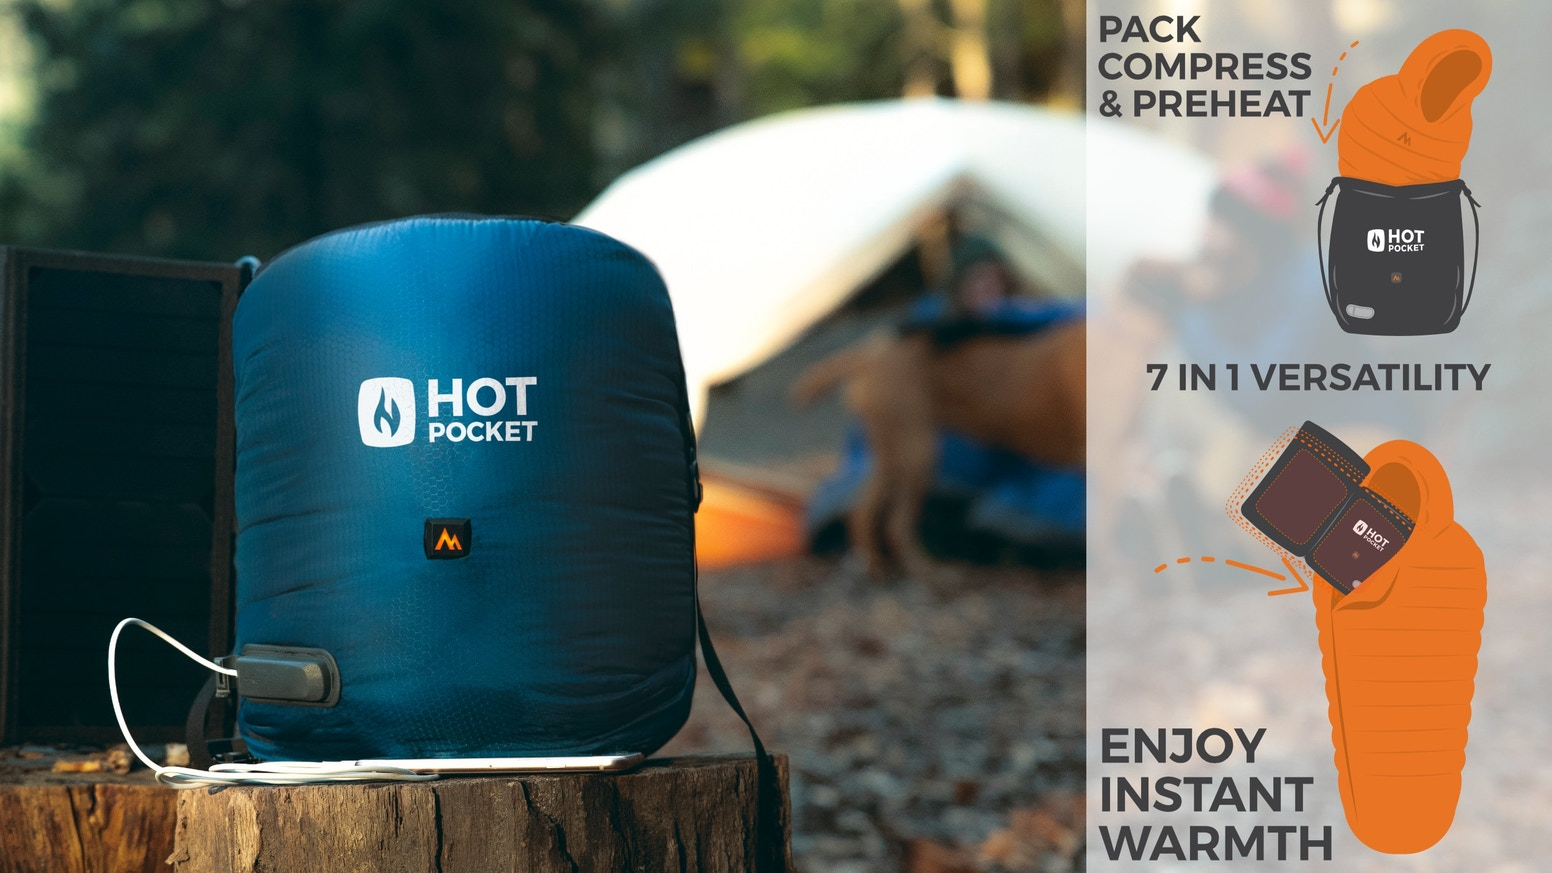 Introducing the world's first heated stuff sack that warms you AND your gear!